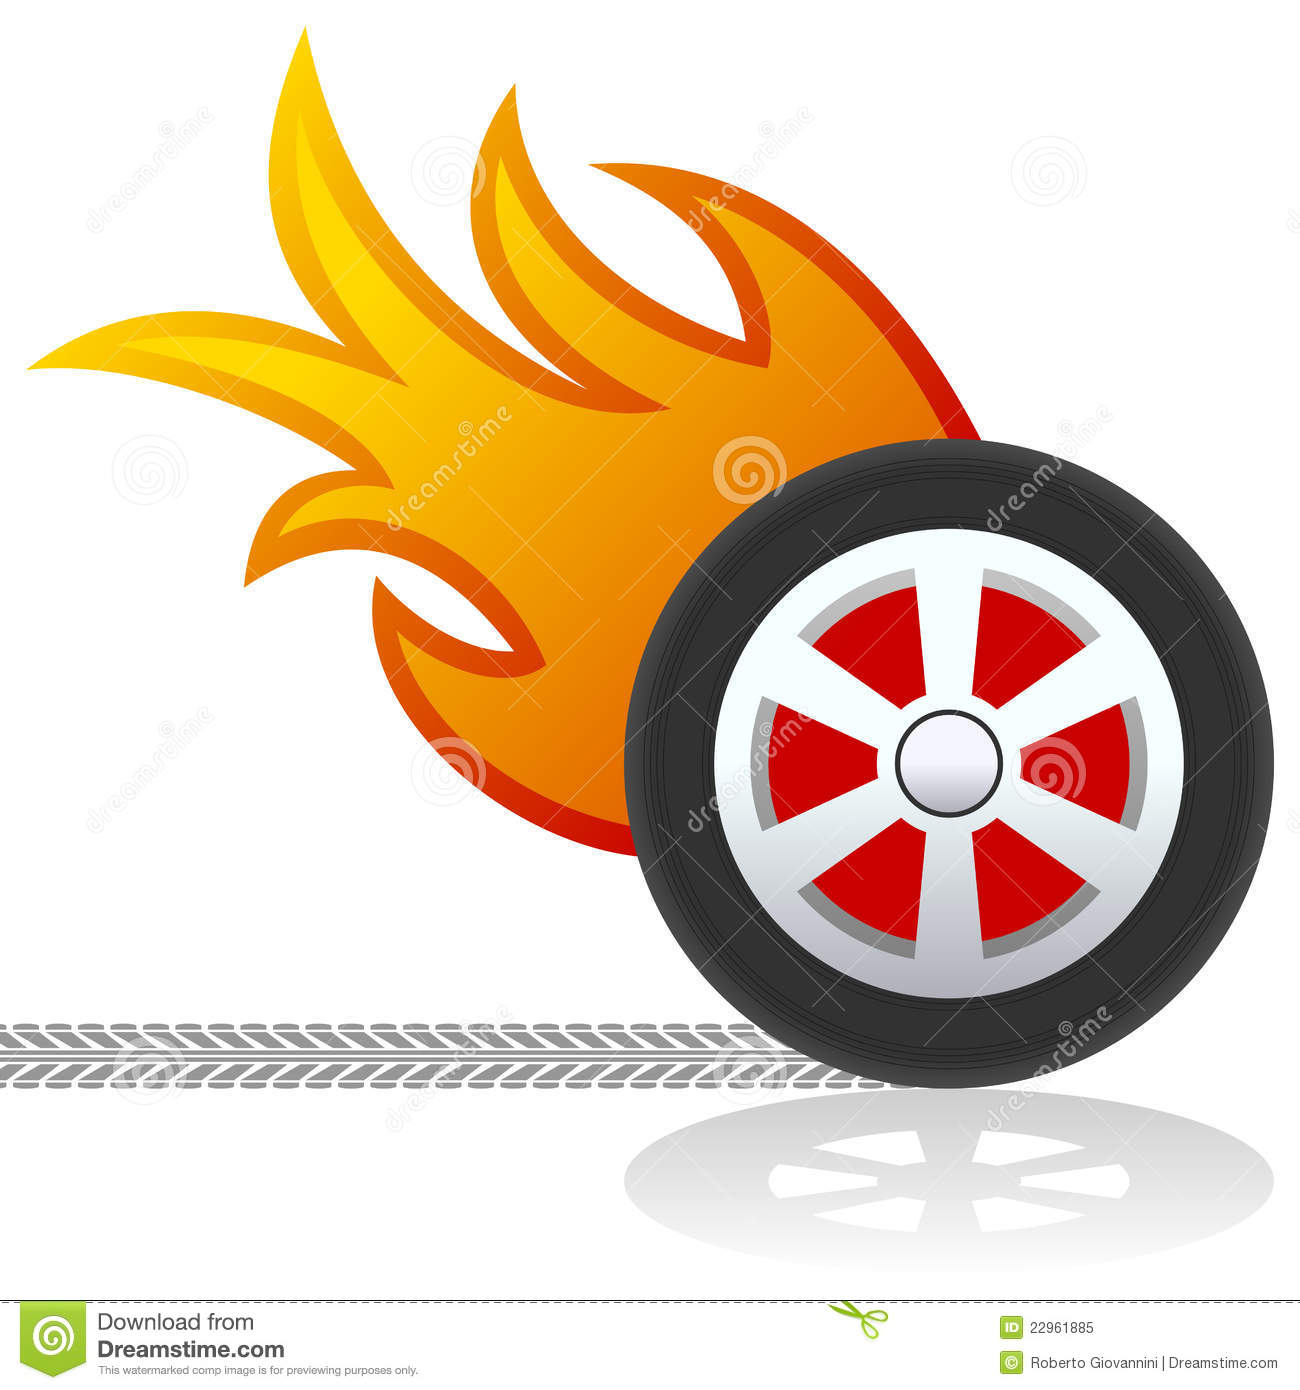 Car Wheel With Flames Logo Stock Vector Illustration Of Symbol